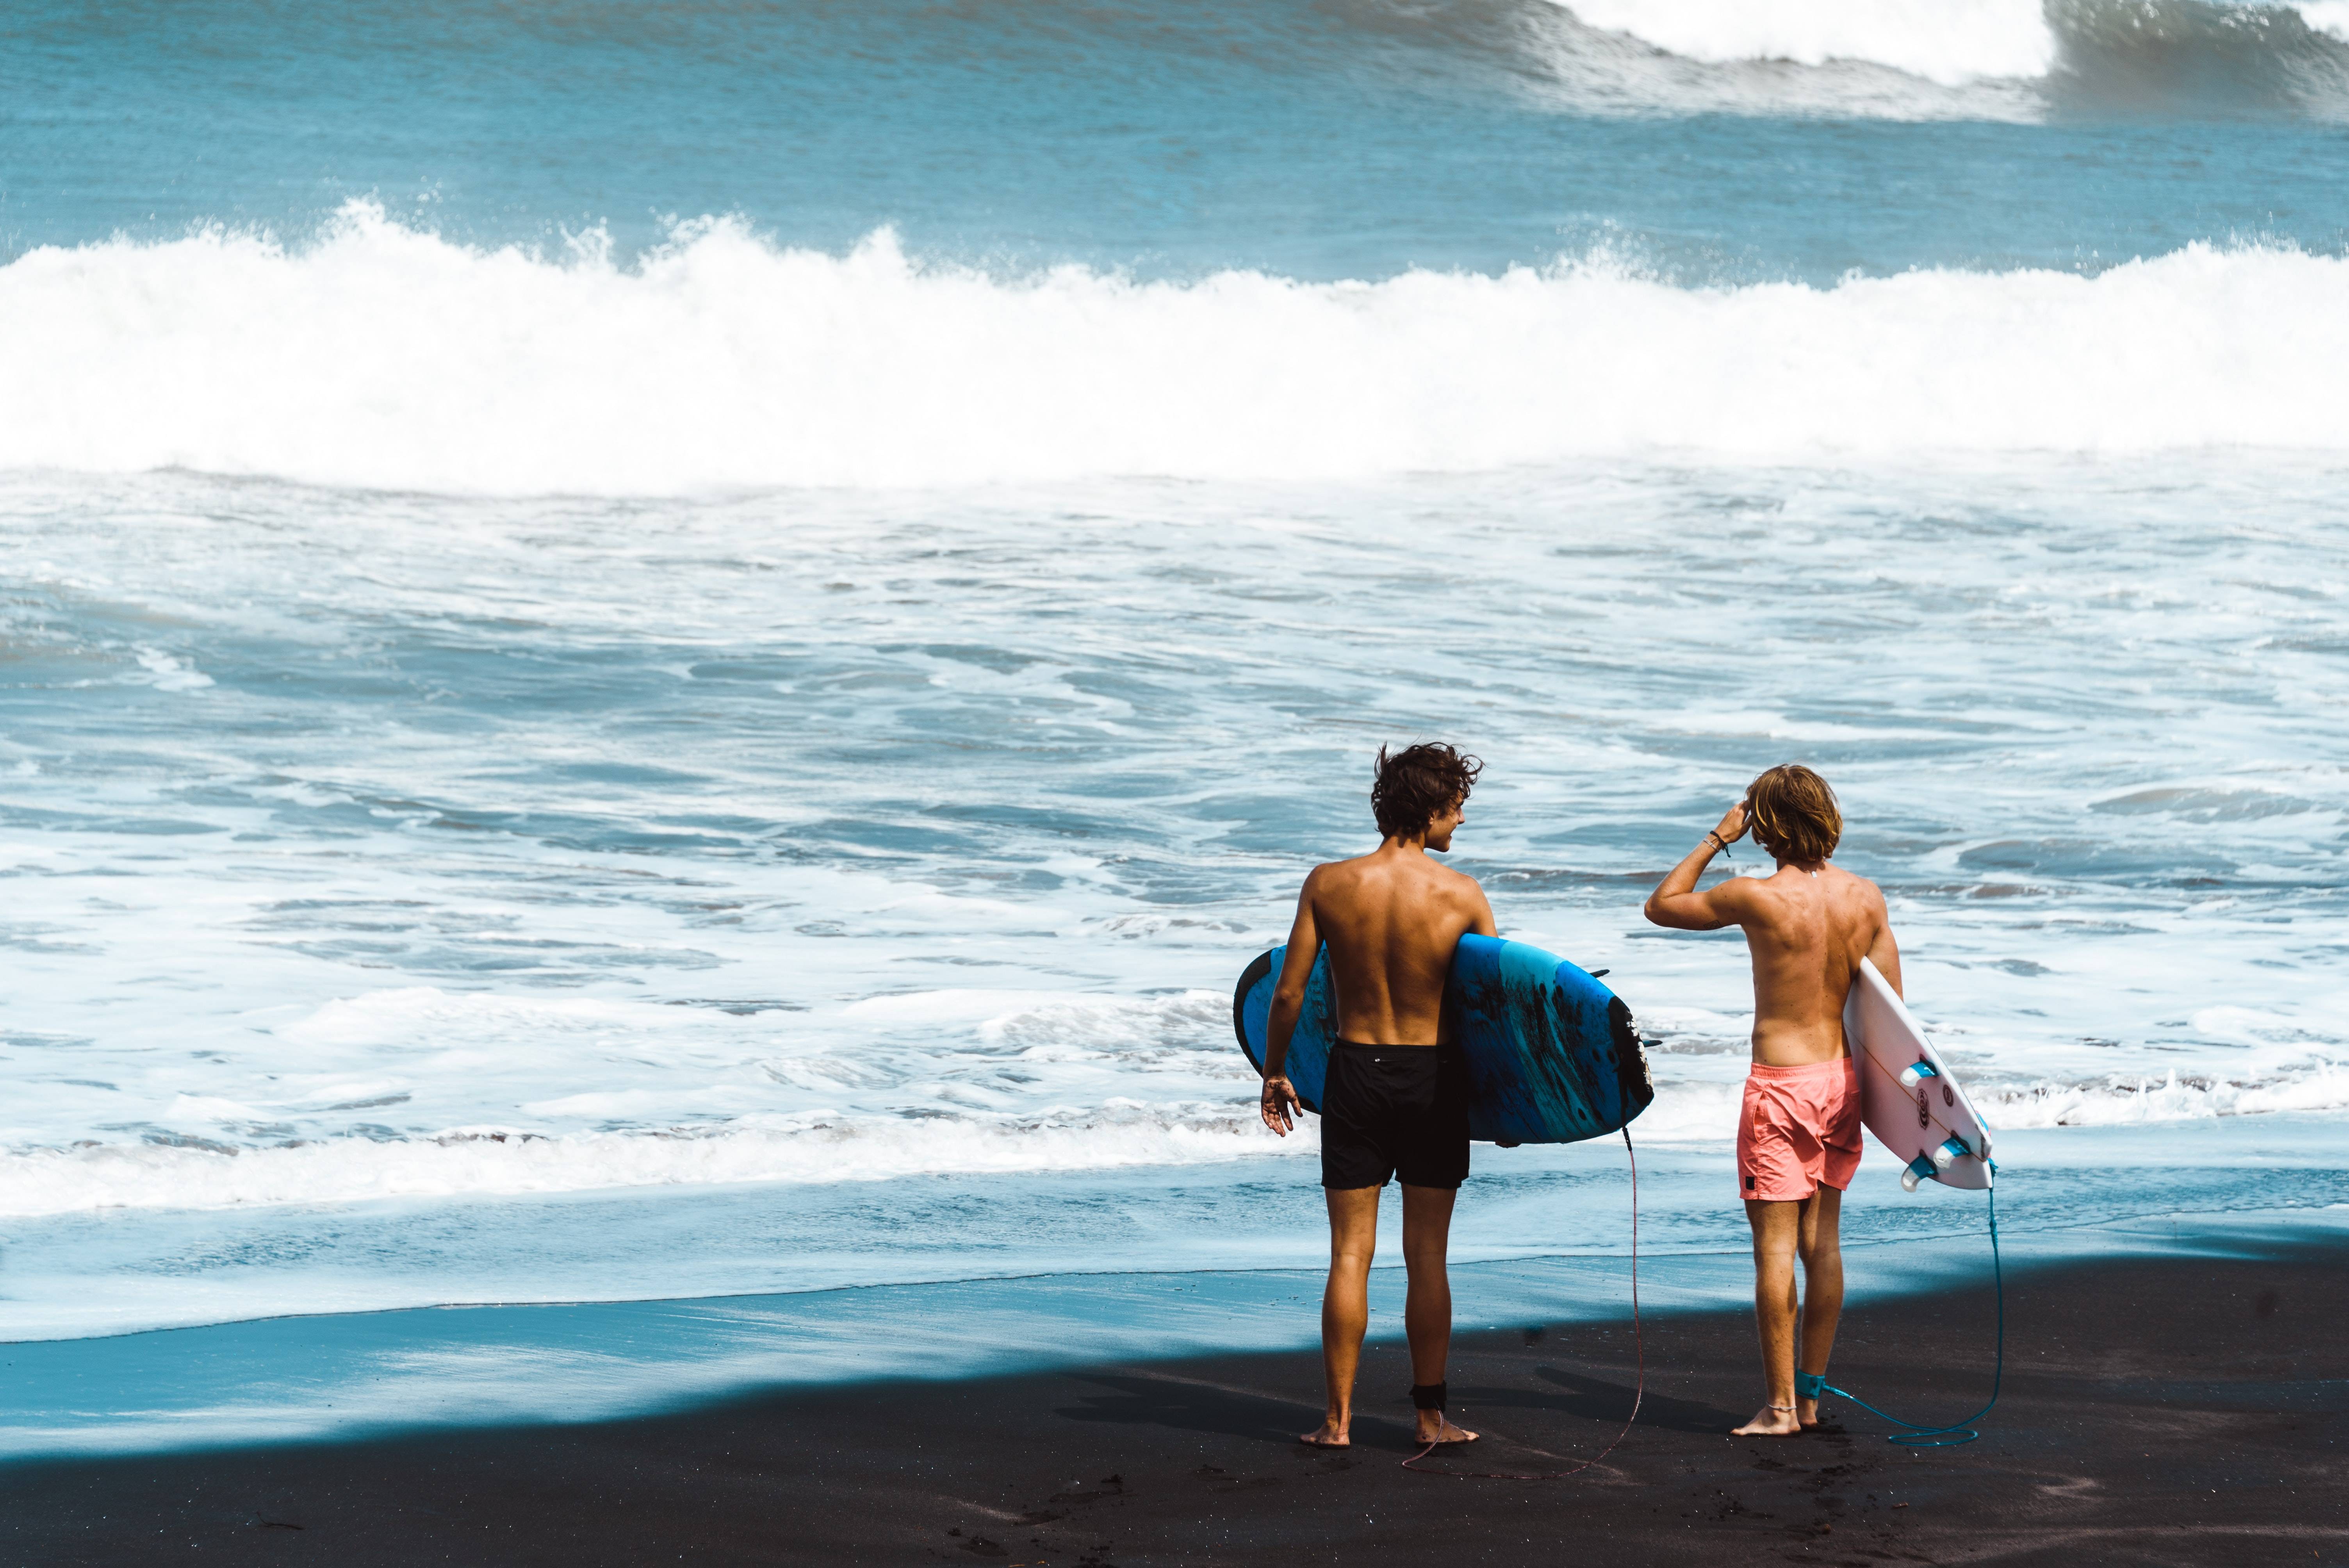 two men carrying surfboards on shoreline